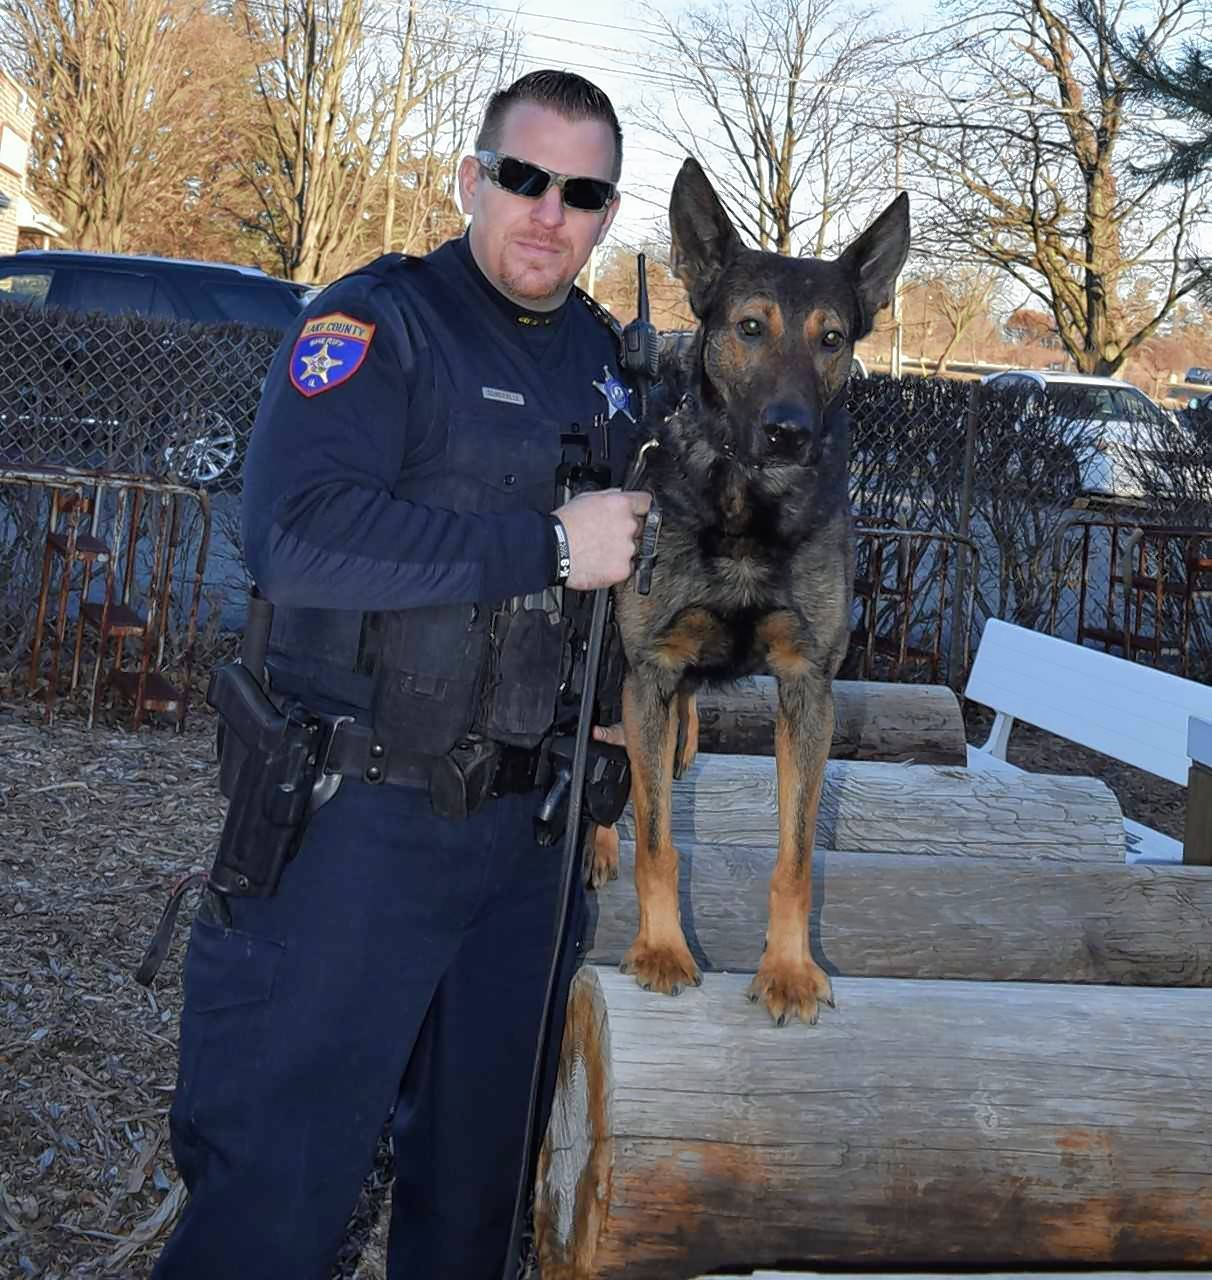 Lake County Sheriff's Deputy Craig Sommerville and canine partner Diesel located a missing juvenile Sunday who was stuck in a retention area and showing early indications of hypothermia.